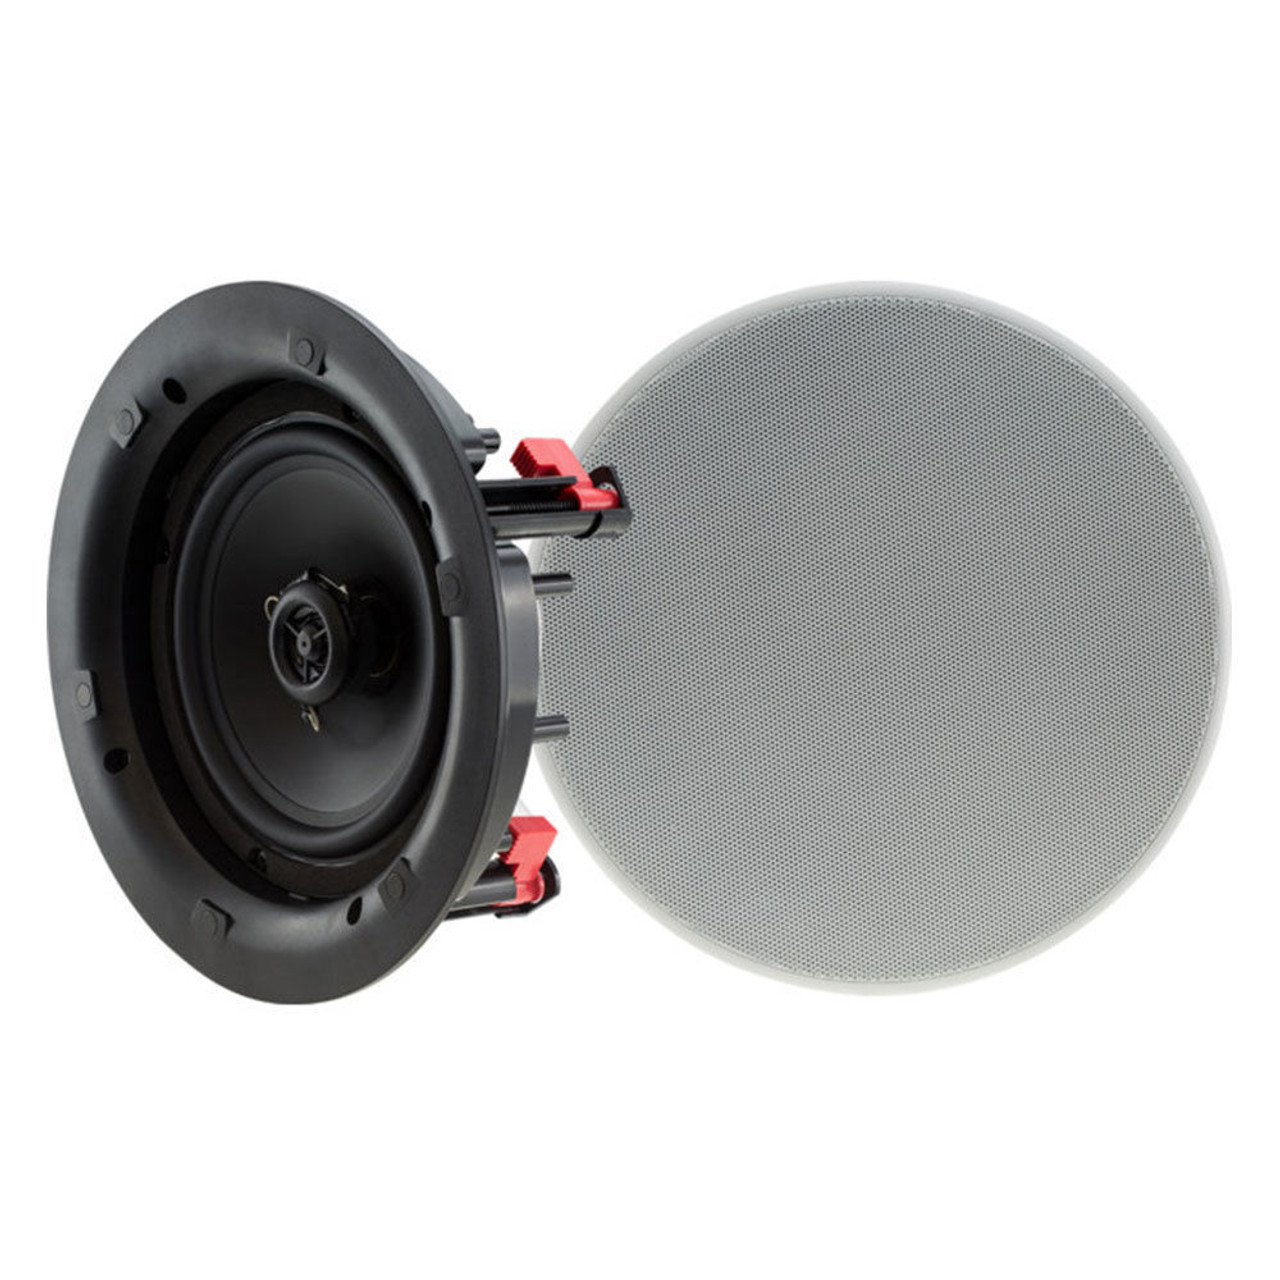 "Wintal CE650 6.5"" Edgeless Ceiling Speakers (Pair)"